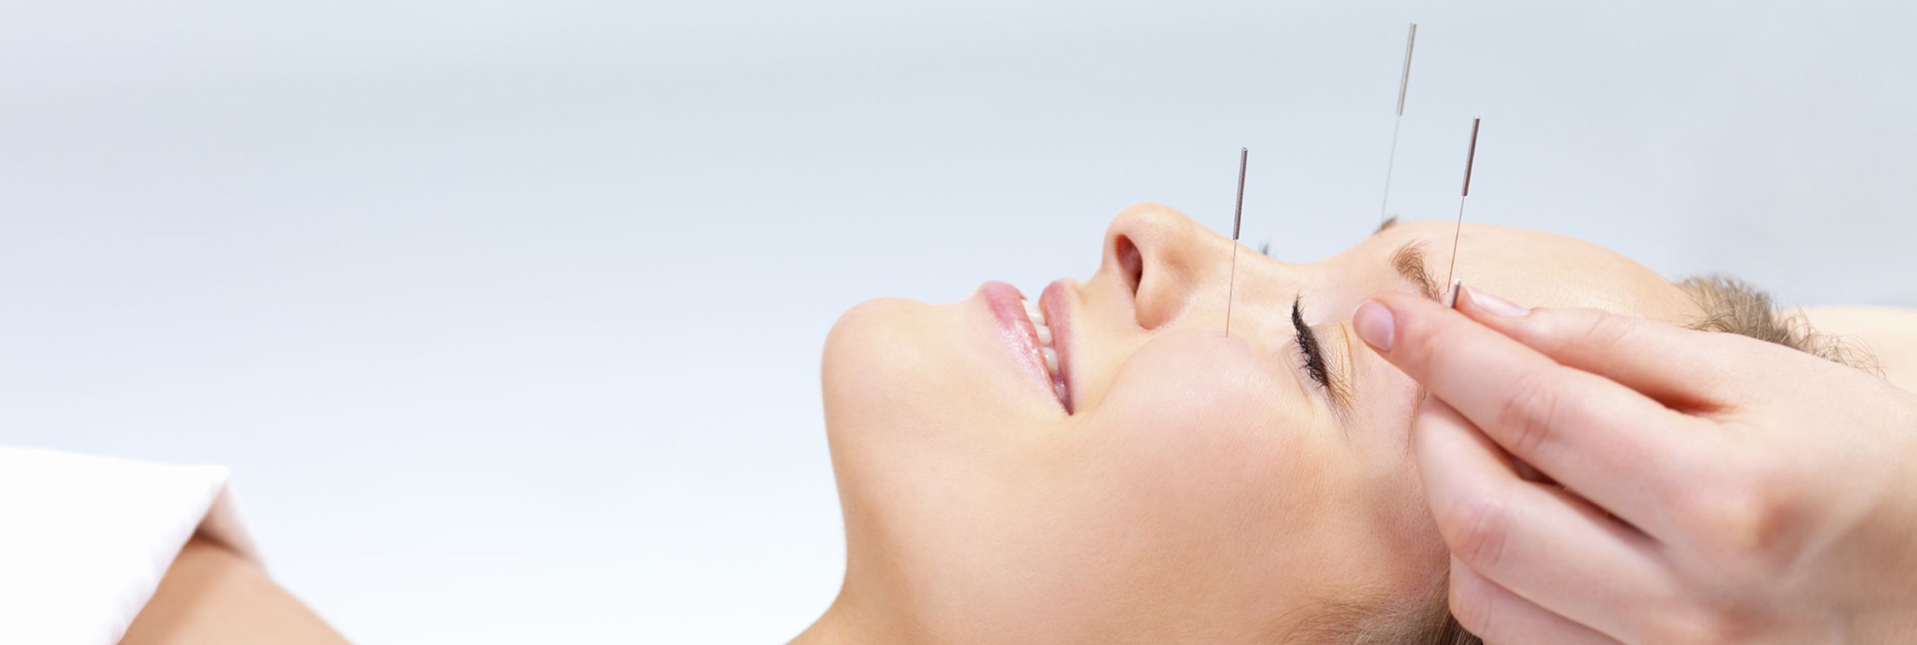 Acupuncture by Dr. Tsan